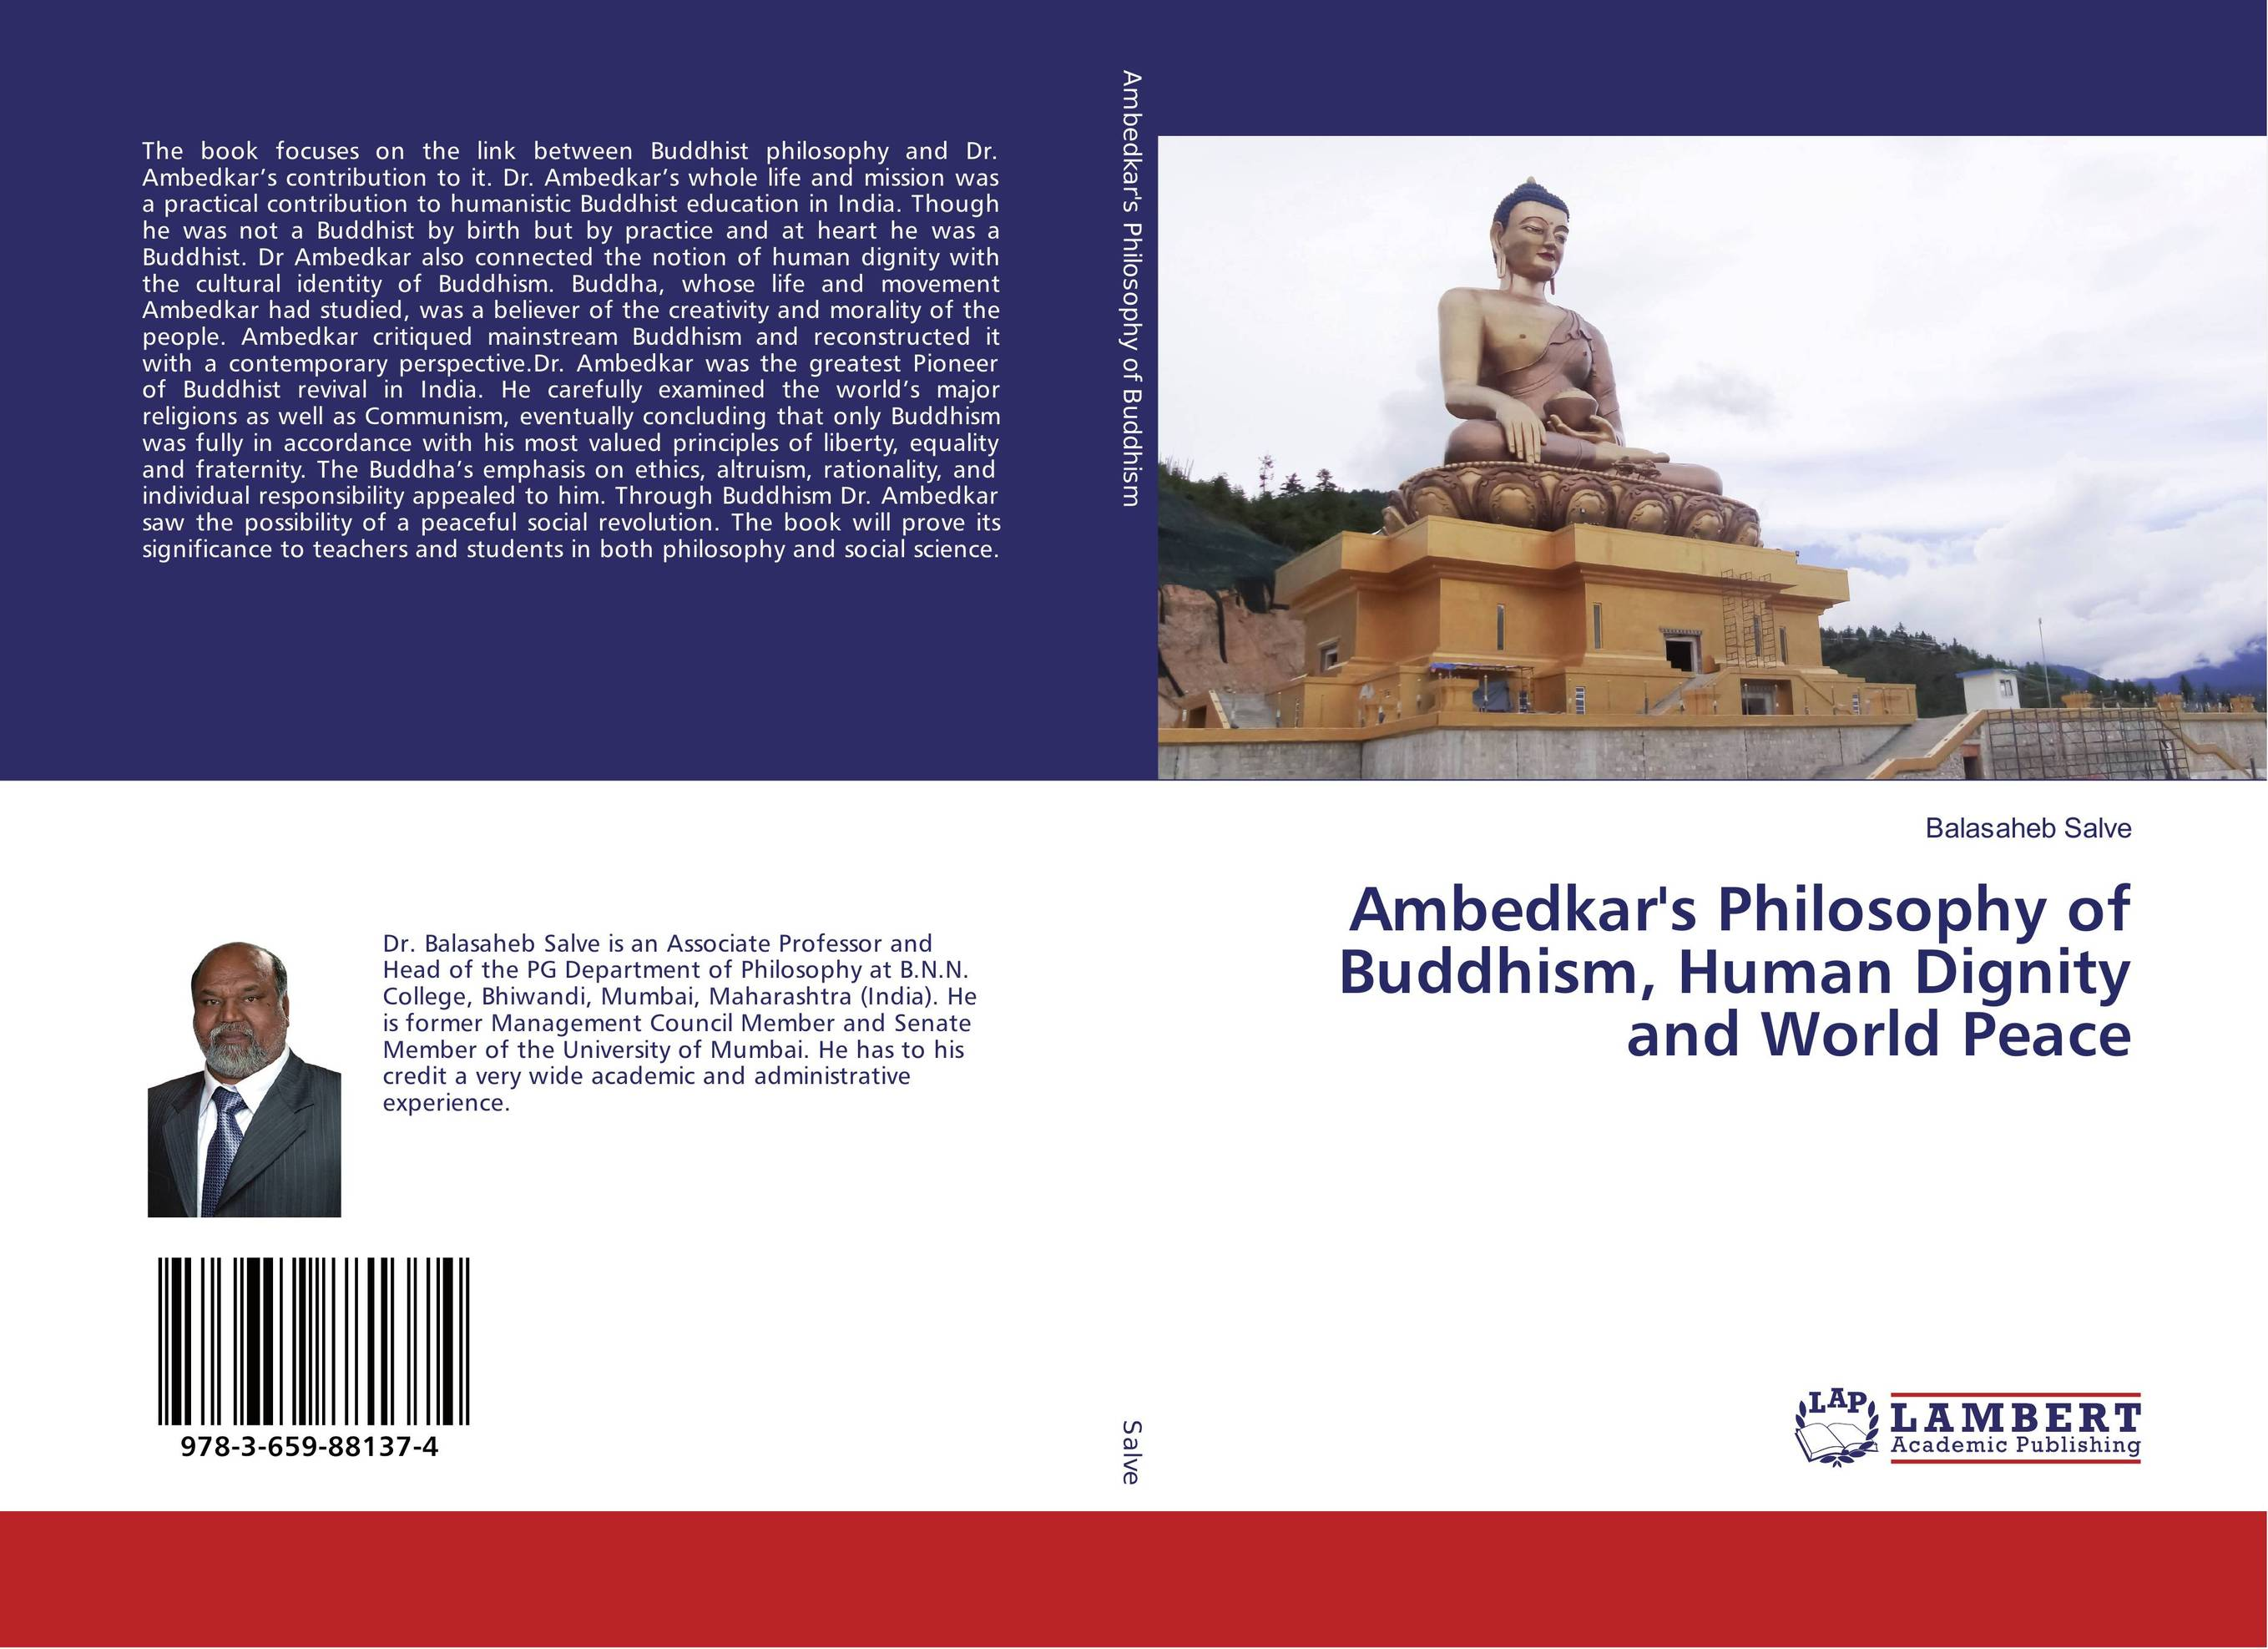 Ambedkar's Philosophy of Buddhism, Human Dignity and World Peace